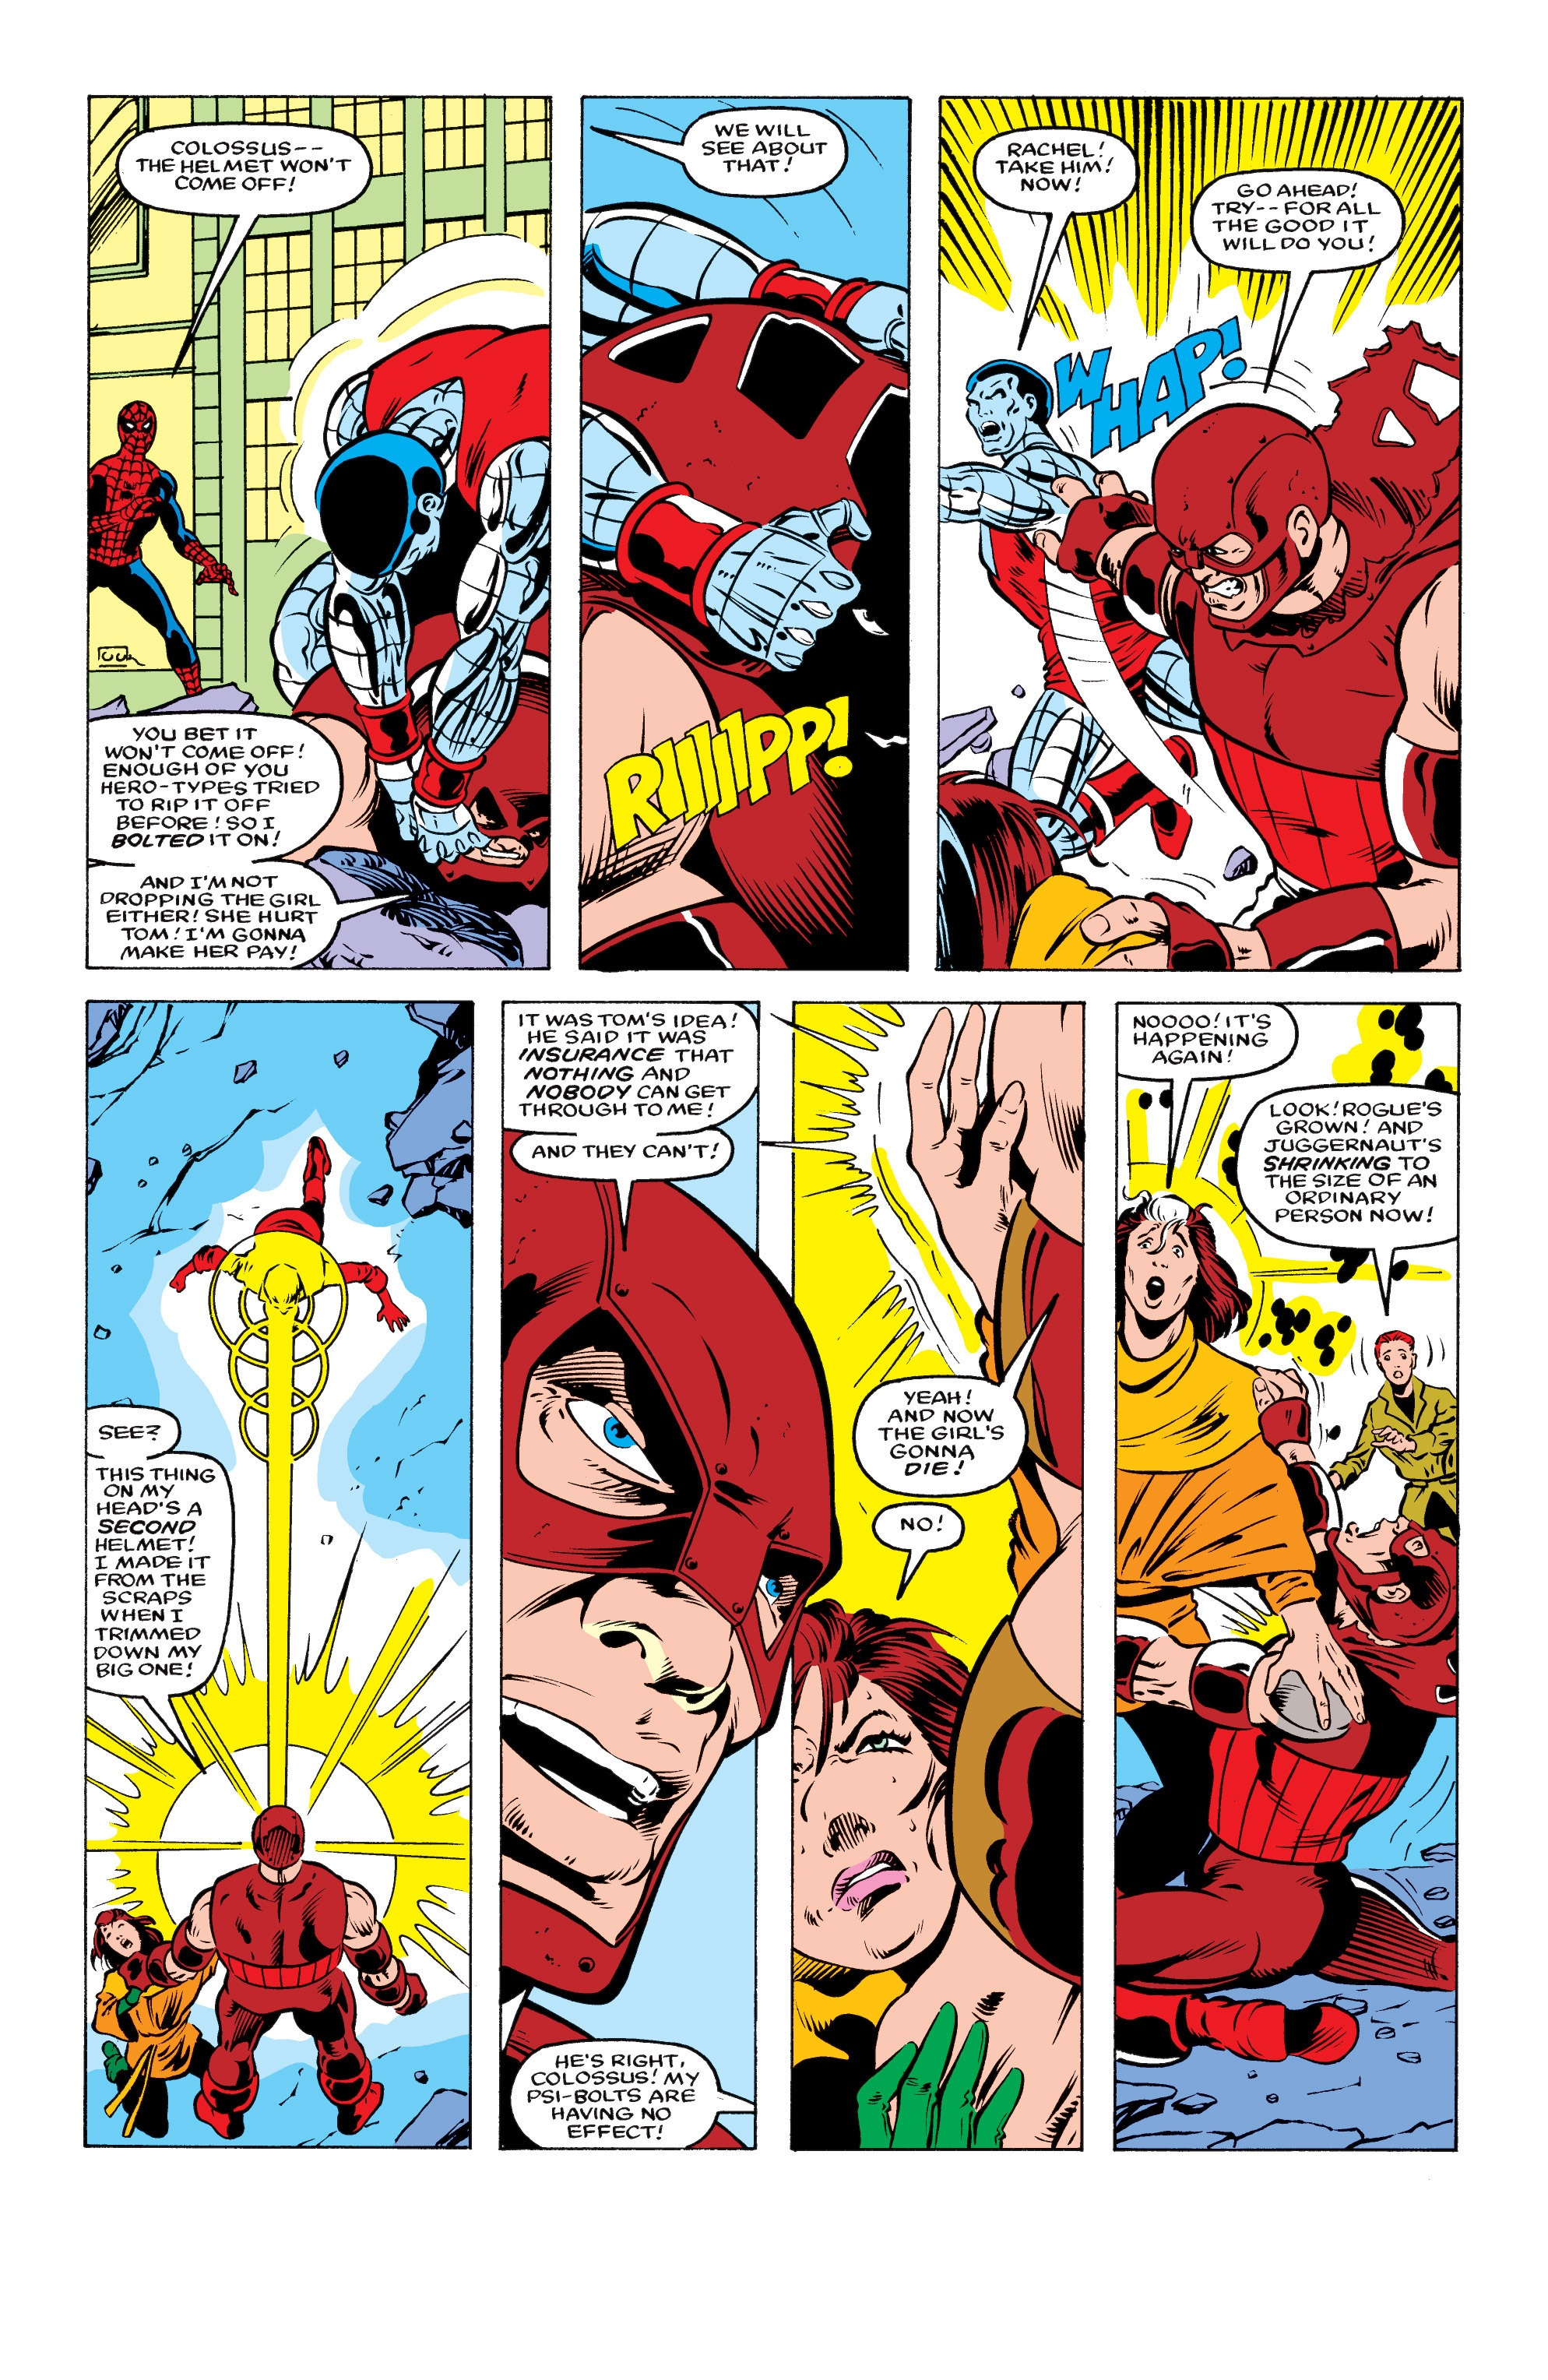 What would happen if Rogue touched Juggernaut? - Quora